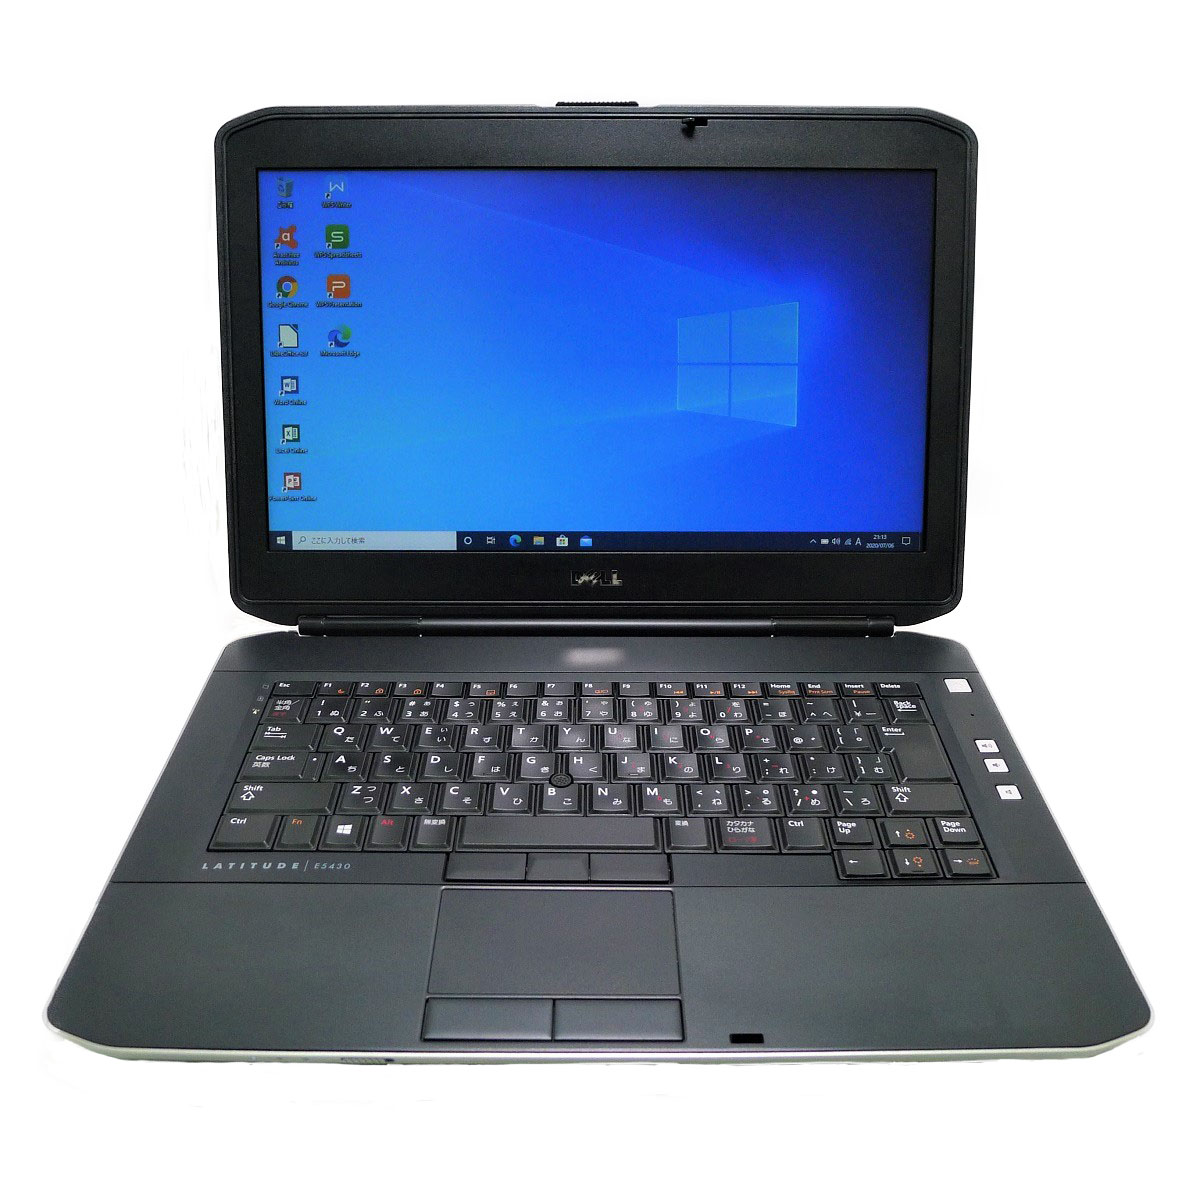 DELL Latitude E5430 Celeron 8GB 新品SSD960GB DVD-ROM 無線LAN Windows10 64bitWPSOffice 14.0インチ HD  パソコン  ノートパソコン:岡田電機